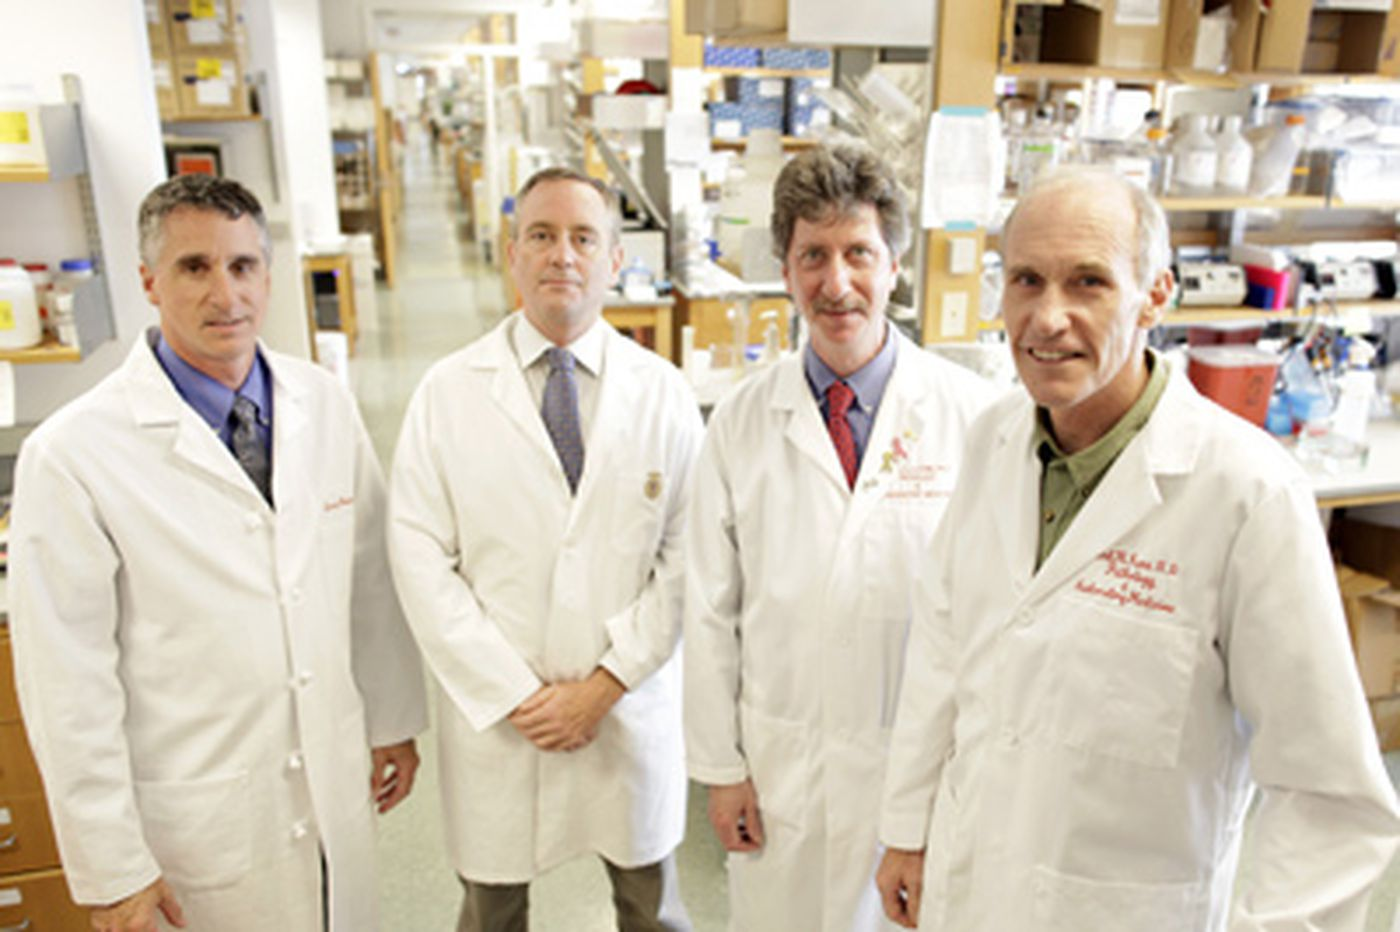 Penn research offers new hope for rare cancer